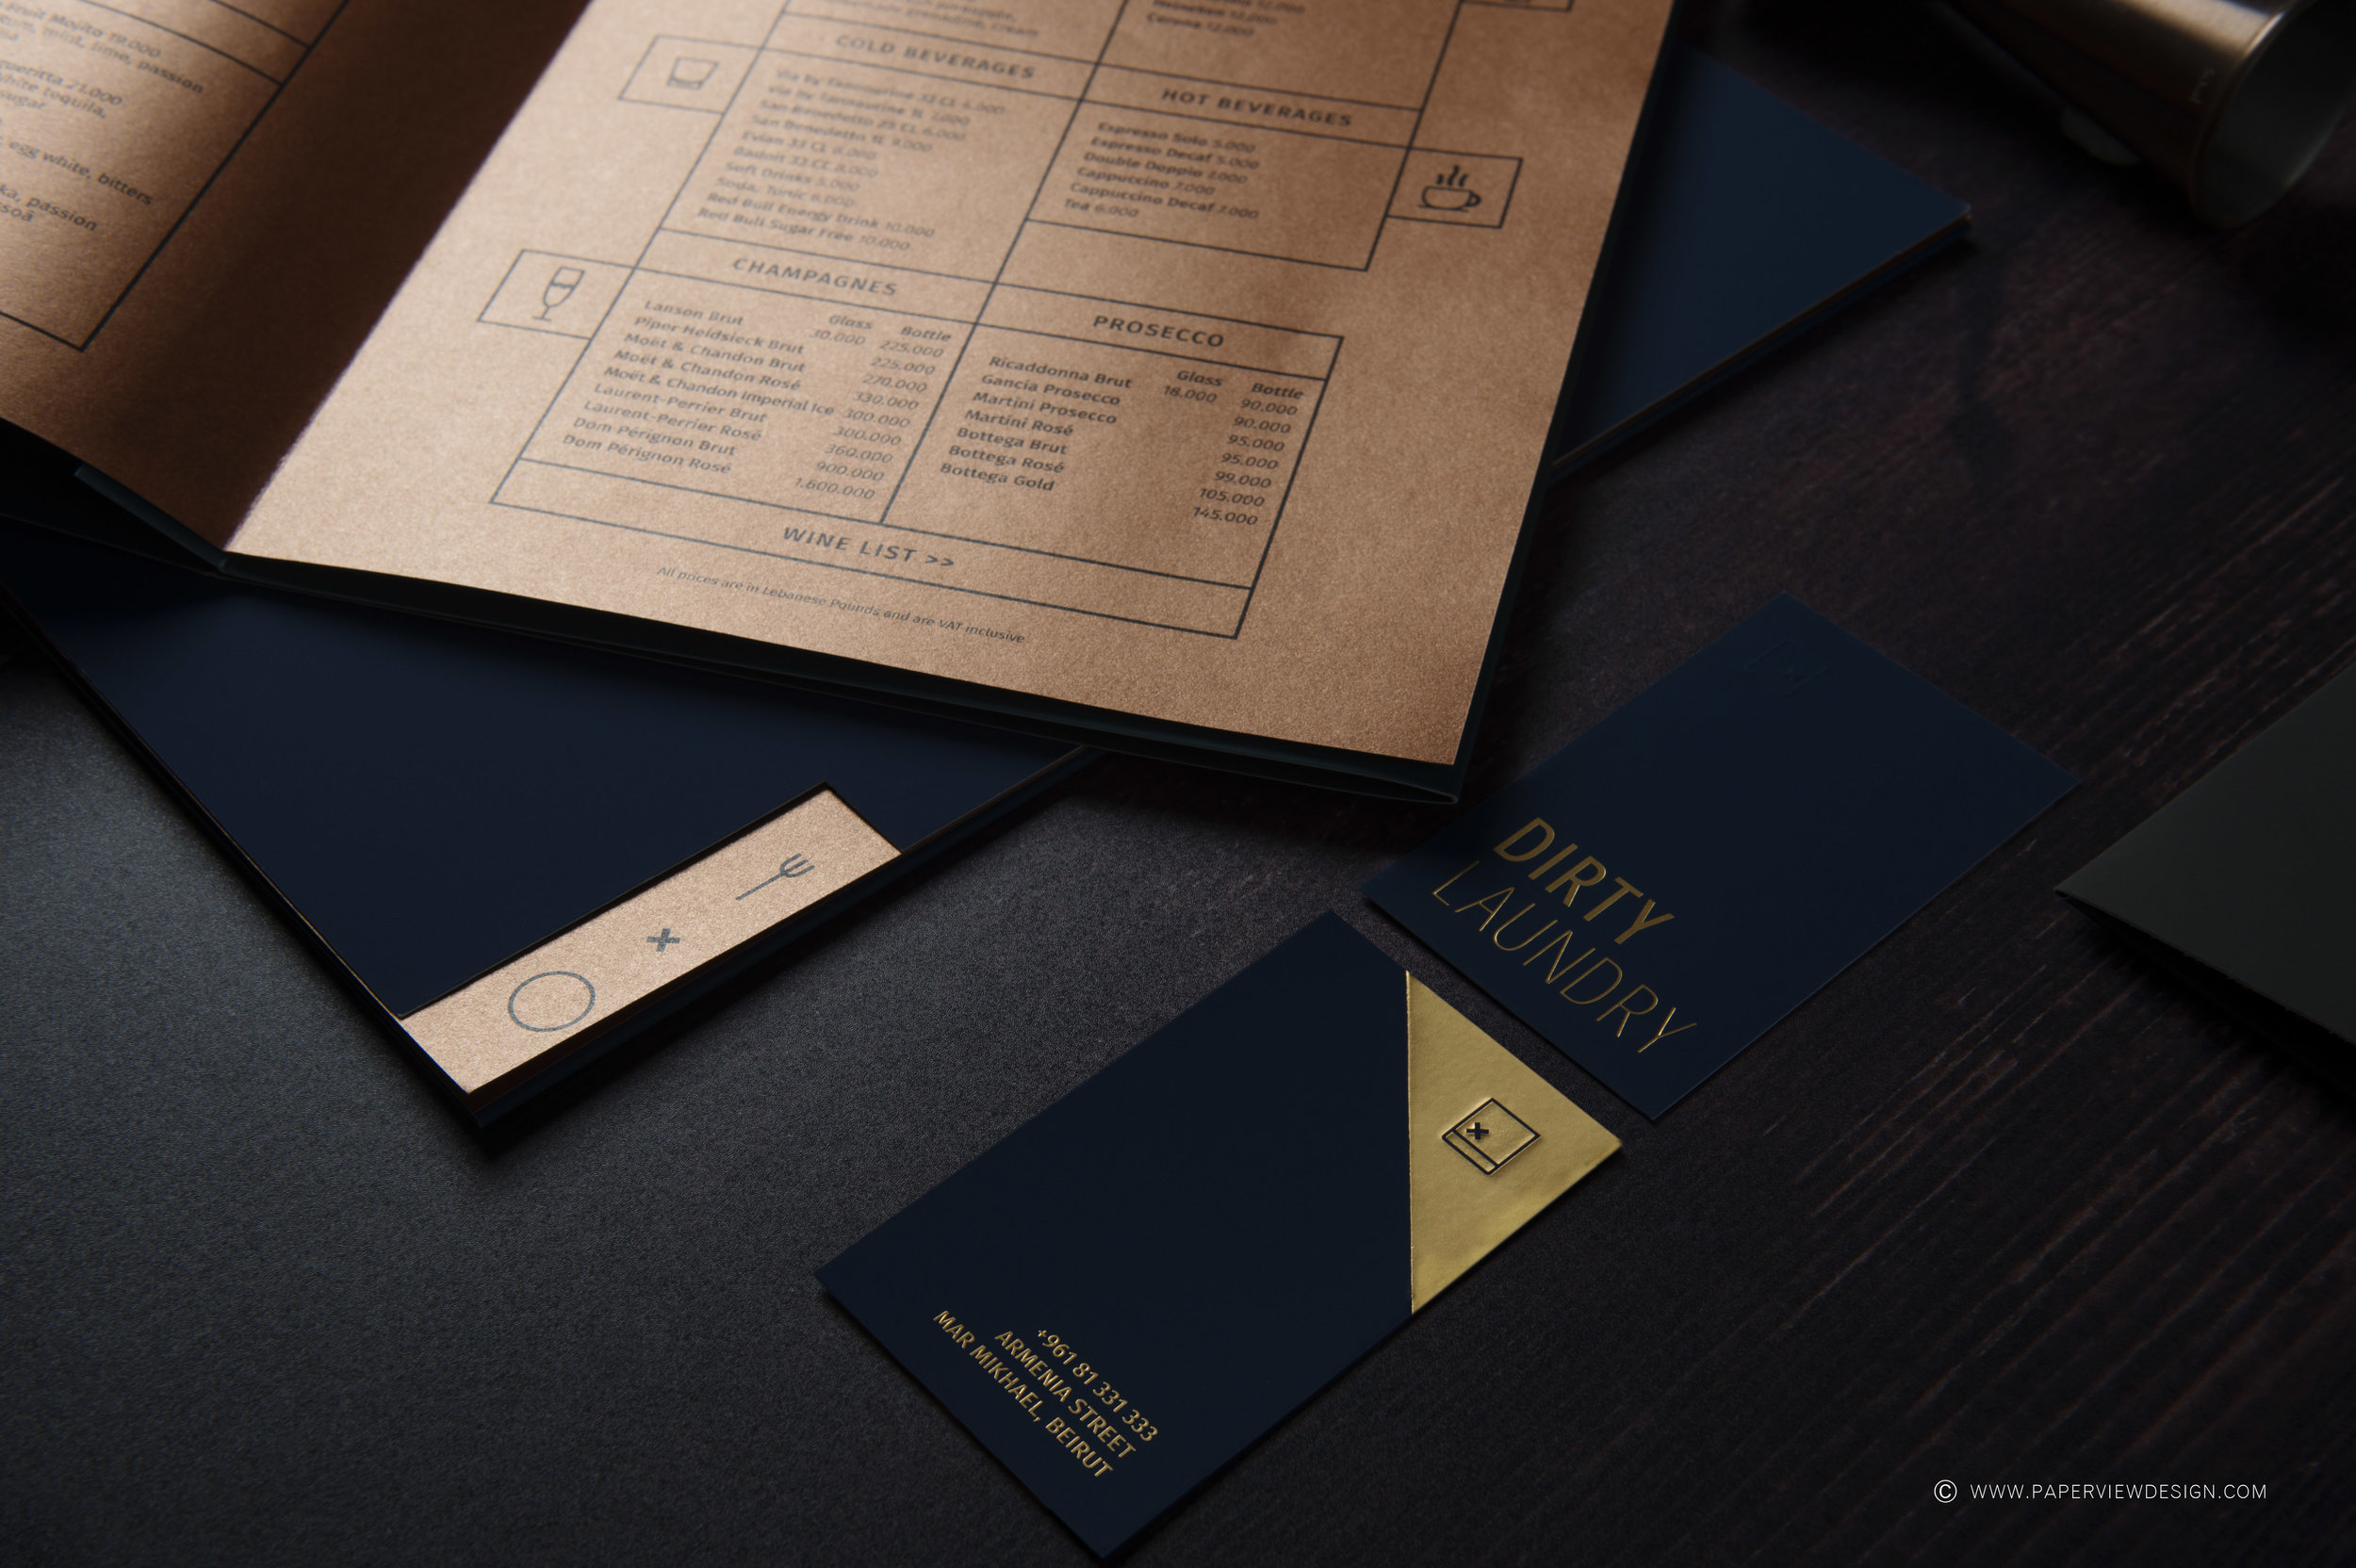 Paper-Inside-Sheets-Copper-Colors-Wine-Menu-Icons-Branding-Identity